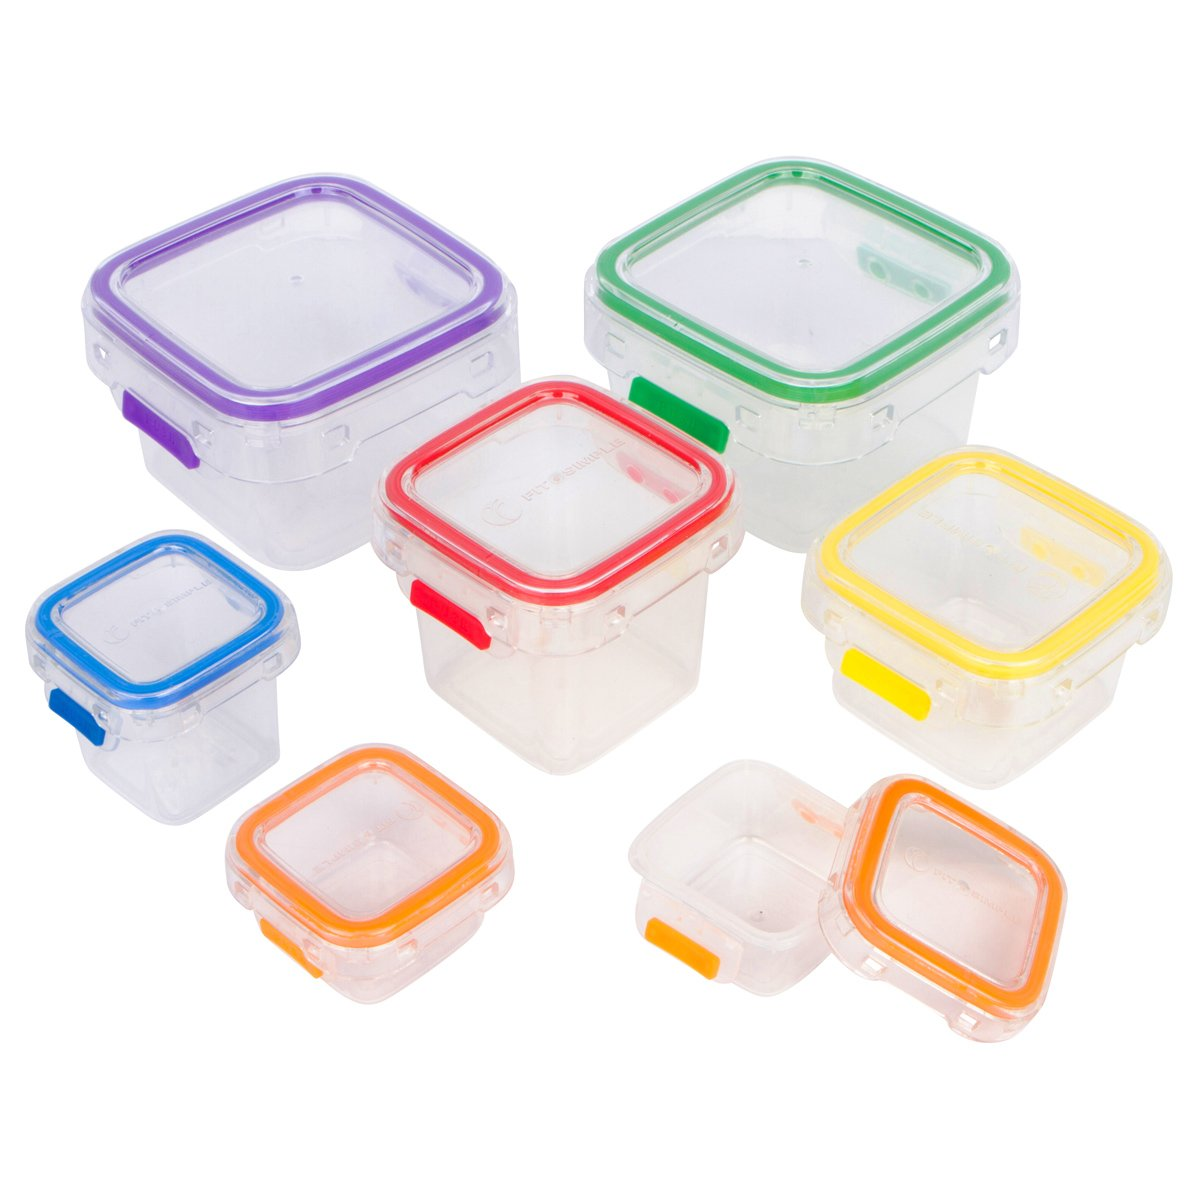 Fit Simple- 7 Piece Portion Control Containers. Store Food and Meals. 100 Percent Leak Proof. Perfect Portion Sized Containers. Comparable to 21 Day Fix. Recipes Included